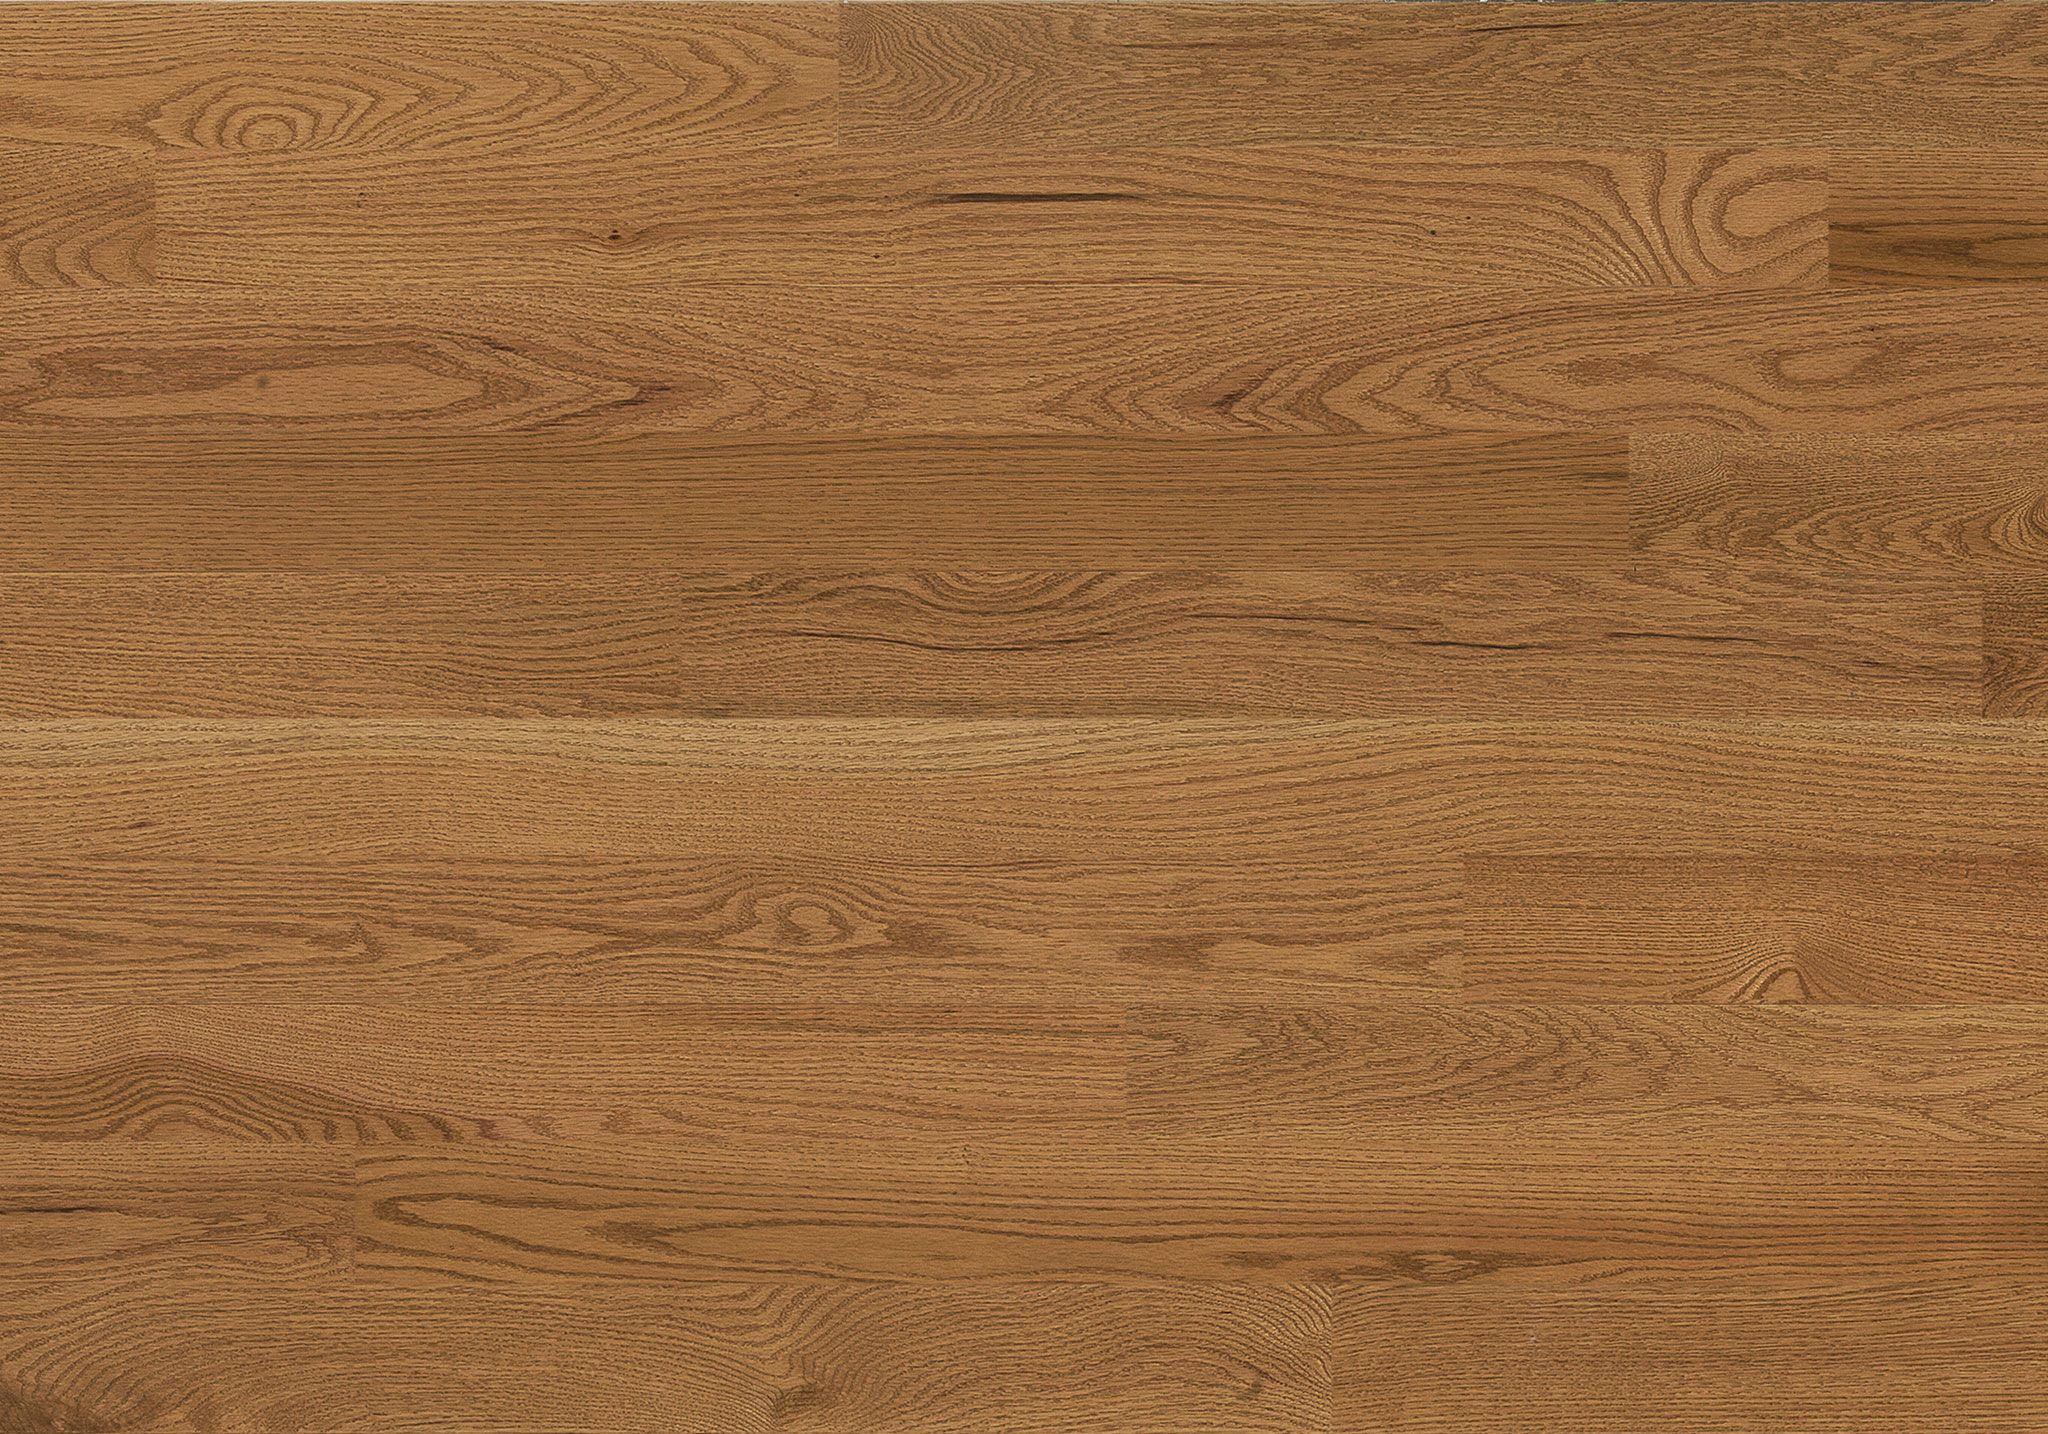 red oak hardwood flooring cost of red oak hardwood flooring 50 beautiful cost to refinish hardwood in floor red oak hardwood flooring cra¨me br lae essential red oak tradition lauzon hardwood